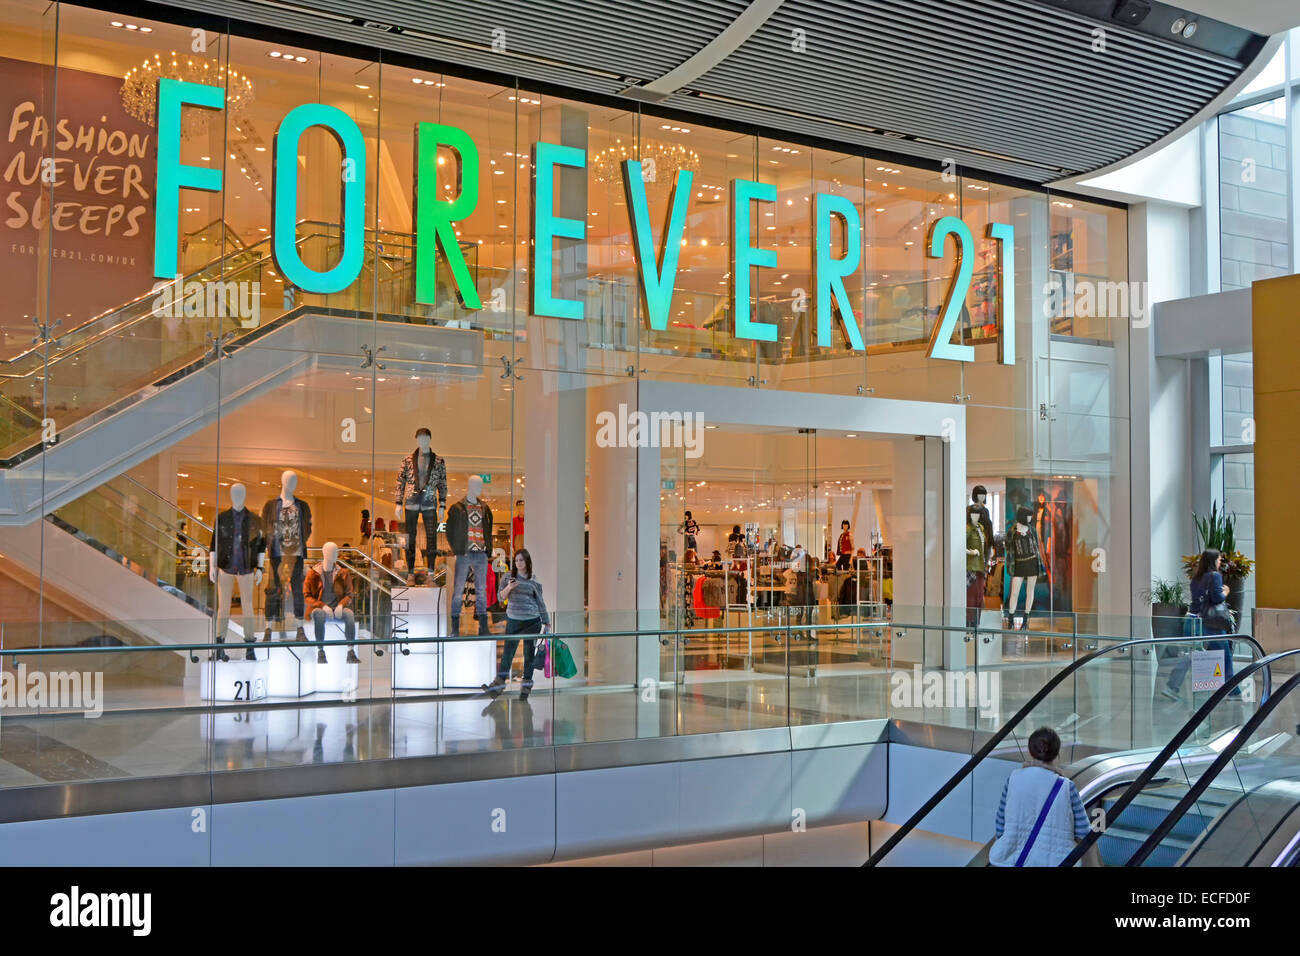 Forever 21 American chain of clothing retailers shopfront in Westfield interior shopping mall Westfield Stratford - Stock Image